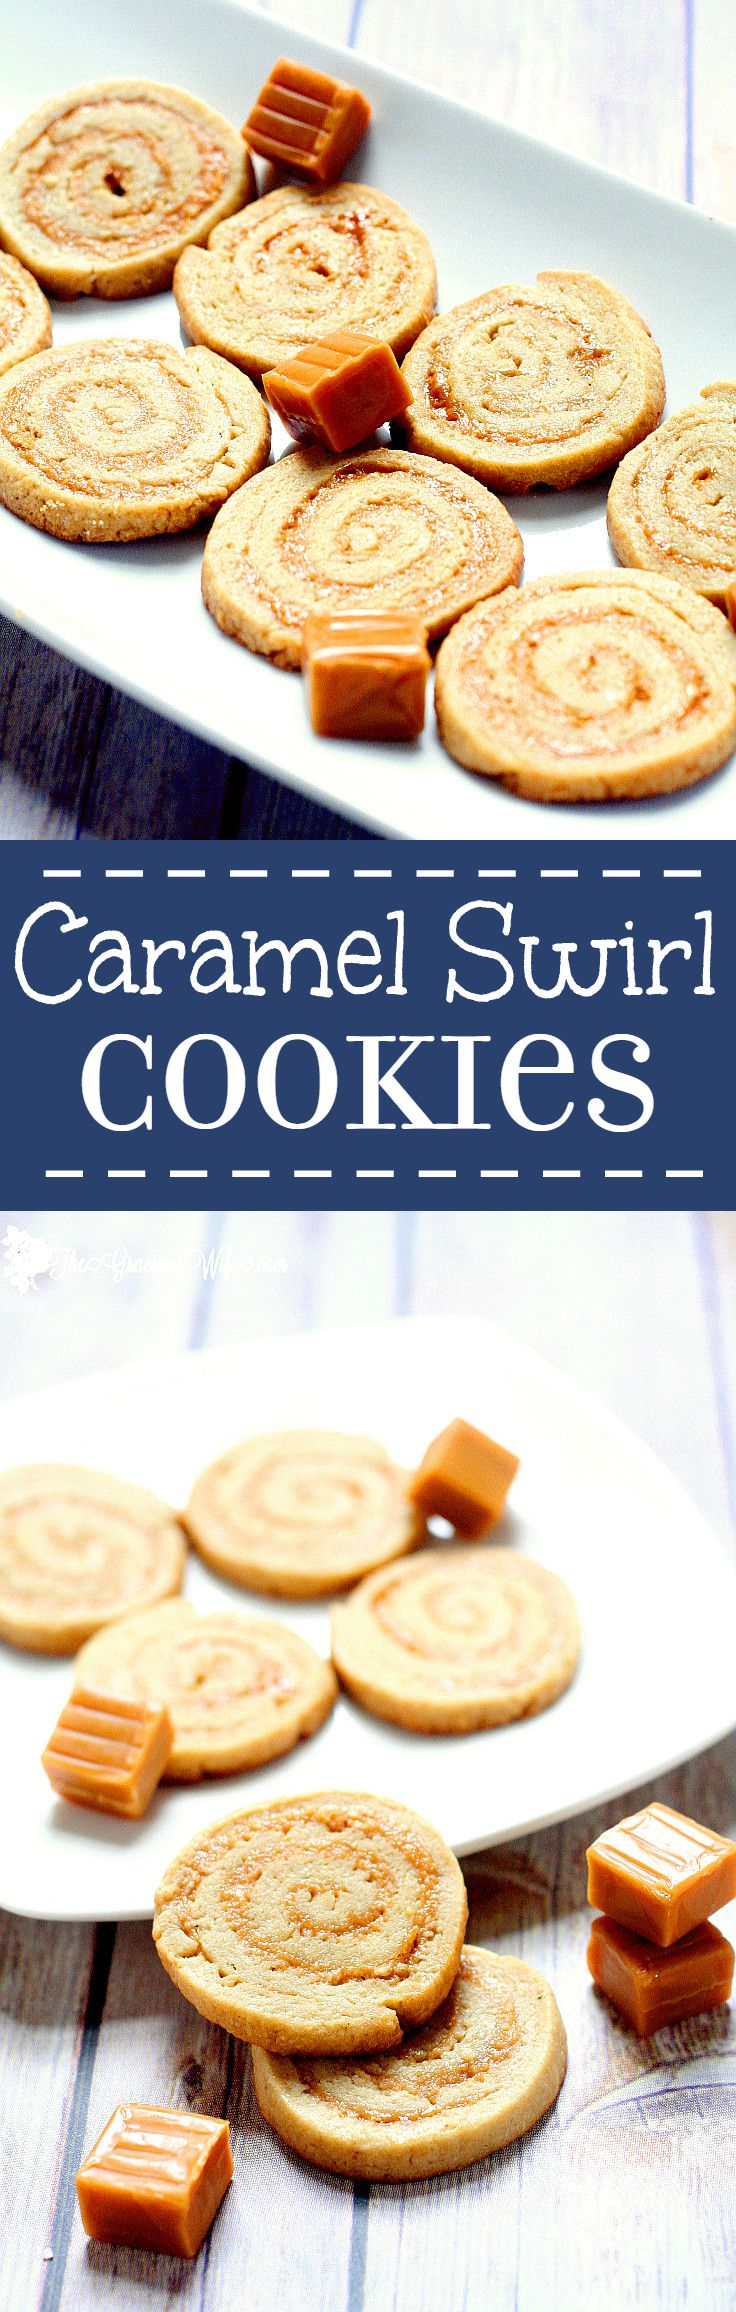 These Caramel Swirl Cookies are a wonderful combination of a soft, chewy cookie swirled with sweet, creamy caramel. Unique and delicious caramel swirl cookie recipe from scratch. Also would make a great Christmas Cookies recipe. THE BEST for caramel lovers everywhere.